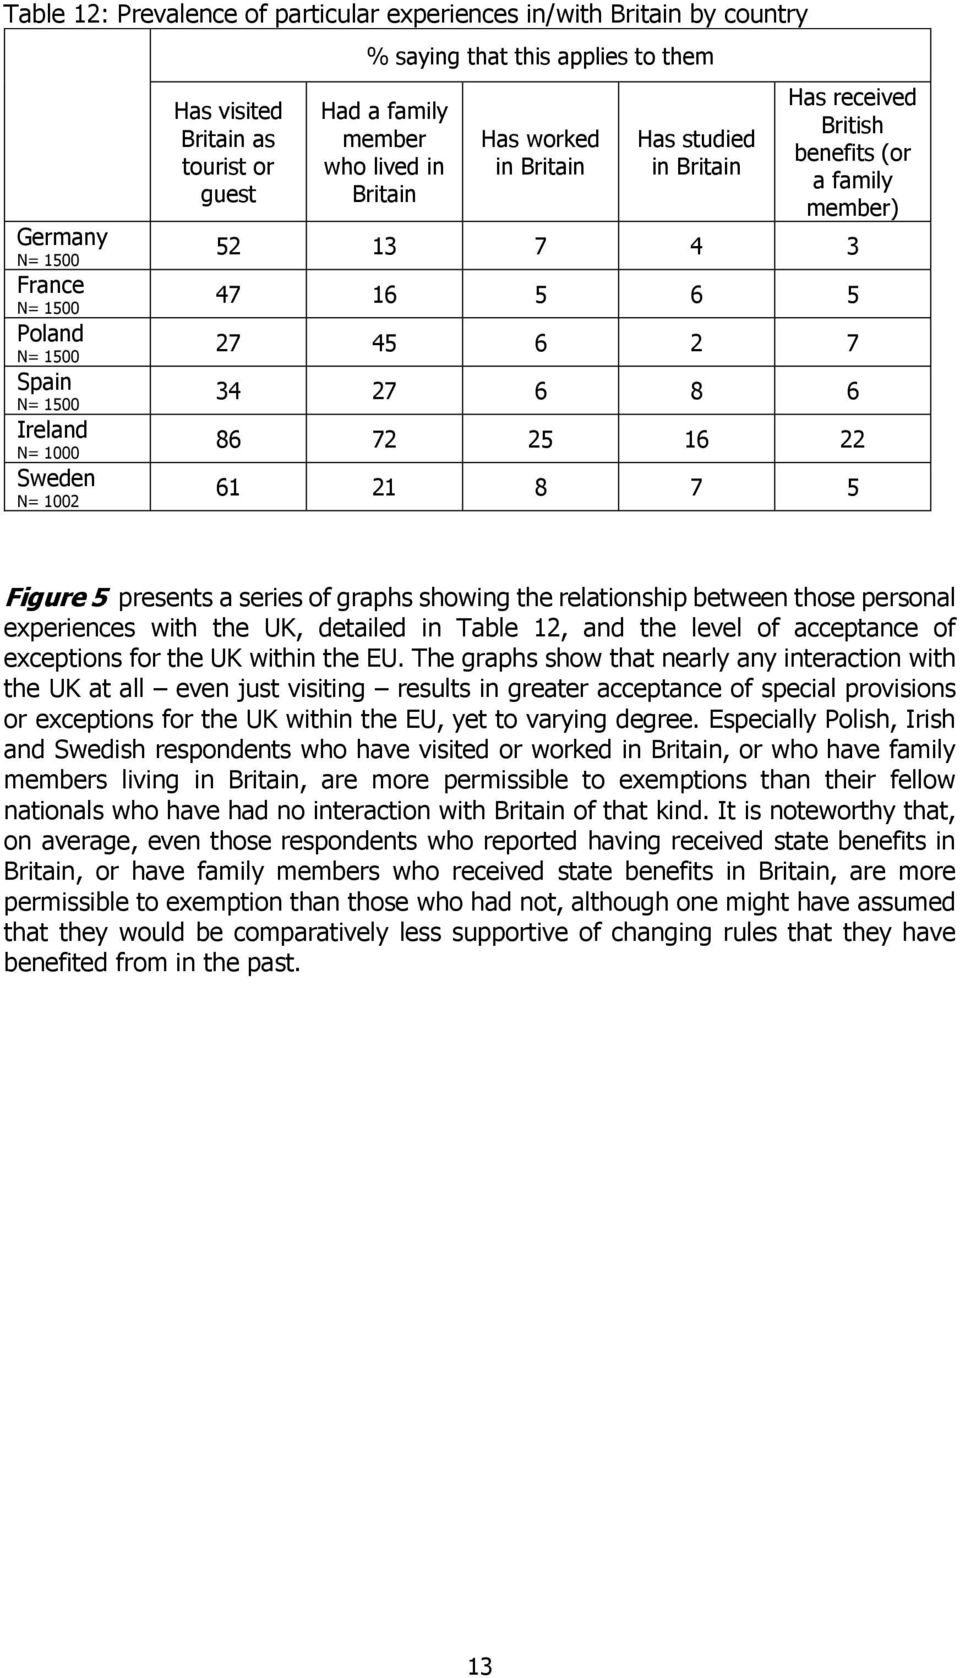 series of graphs showing the relationship between those personal experiences with the UK, detailed in Table 12, and the level of acceptance of exceptions for the UK within the EU.